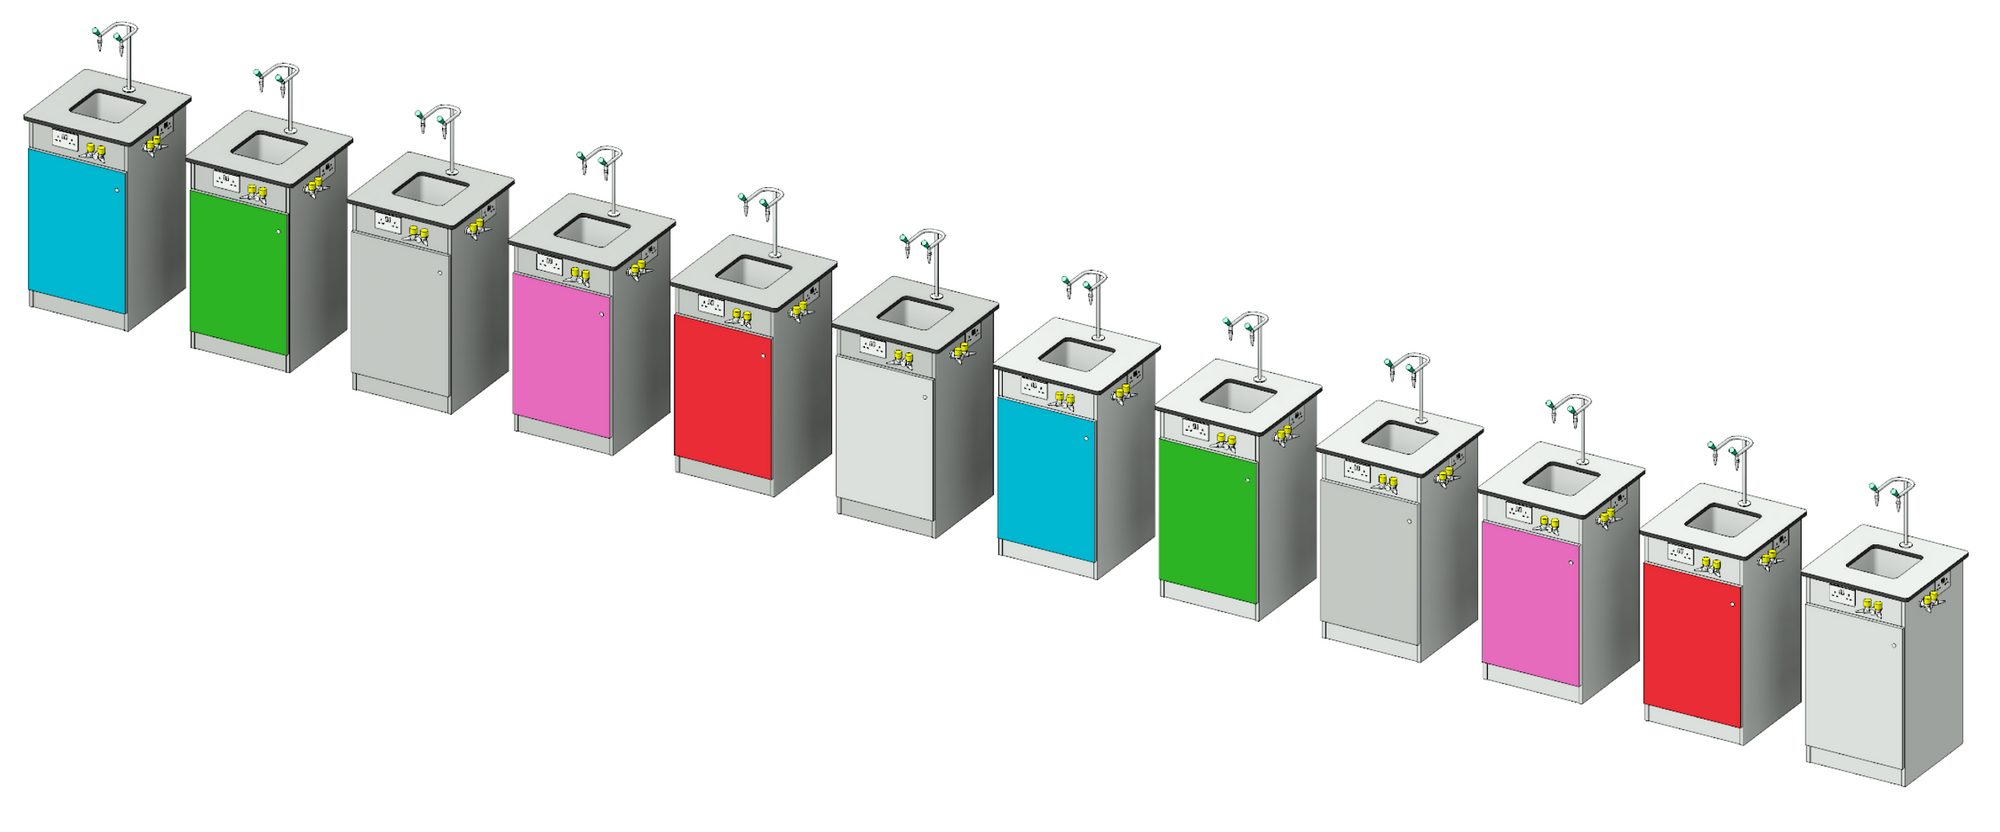 3D image showing service bollard material variations.